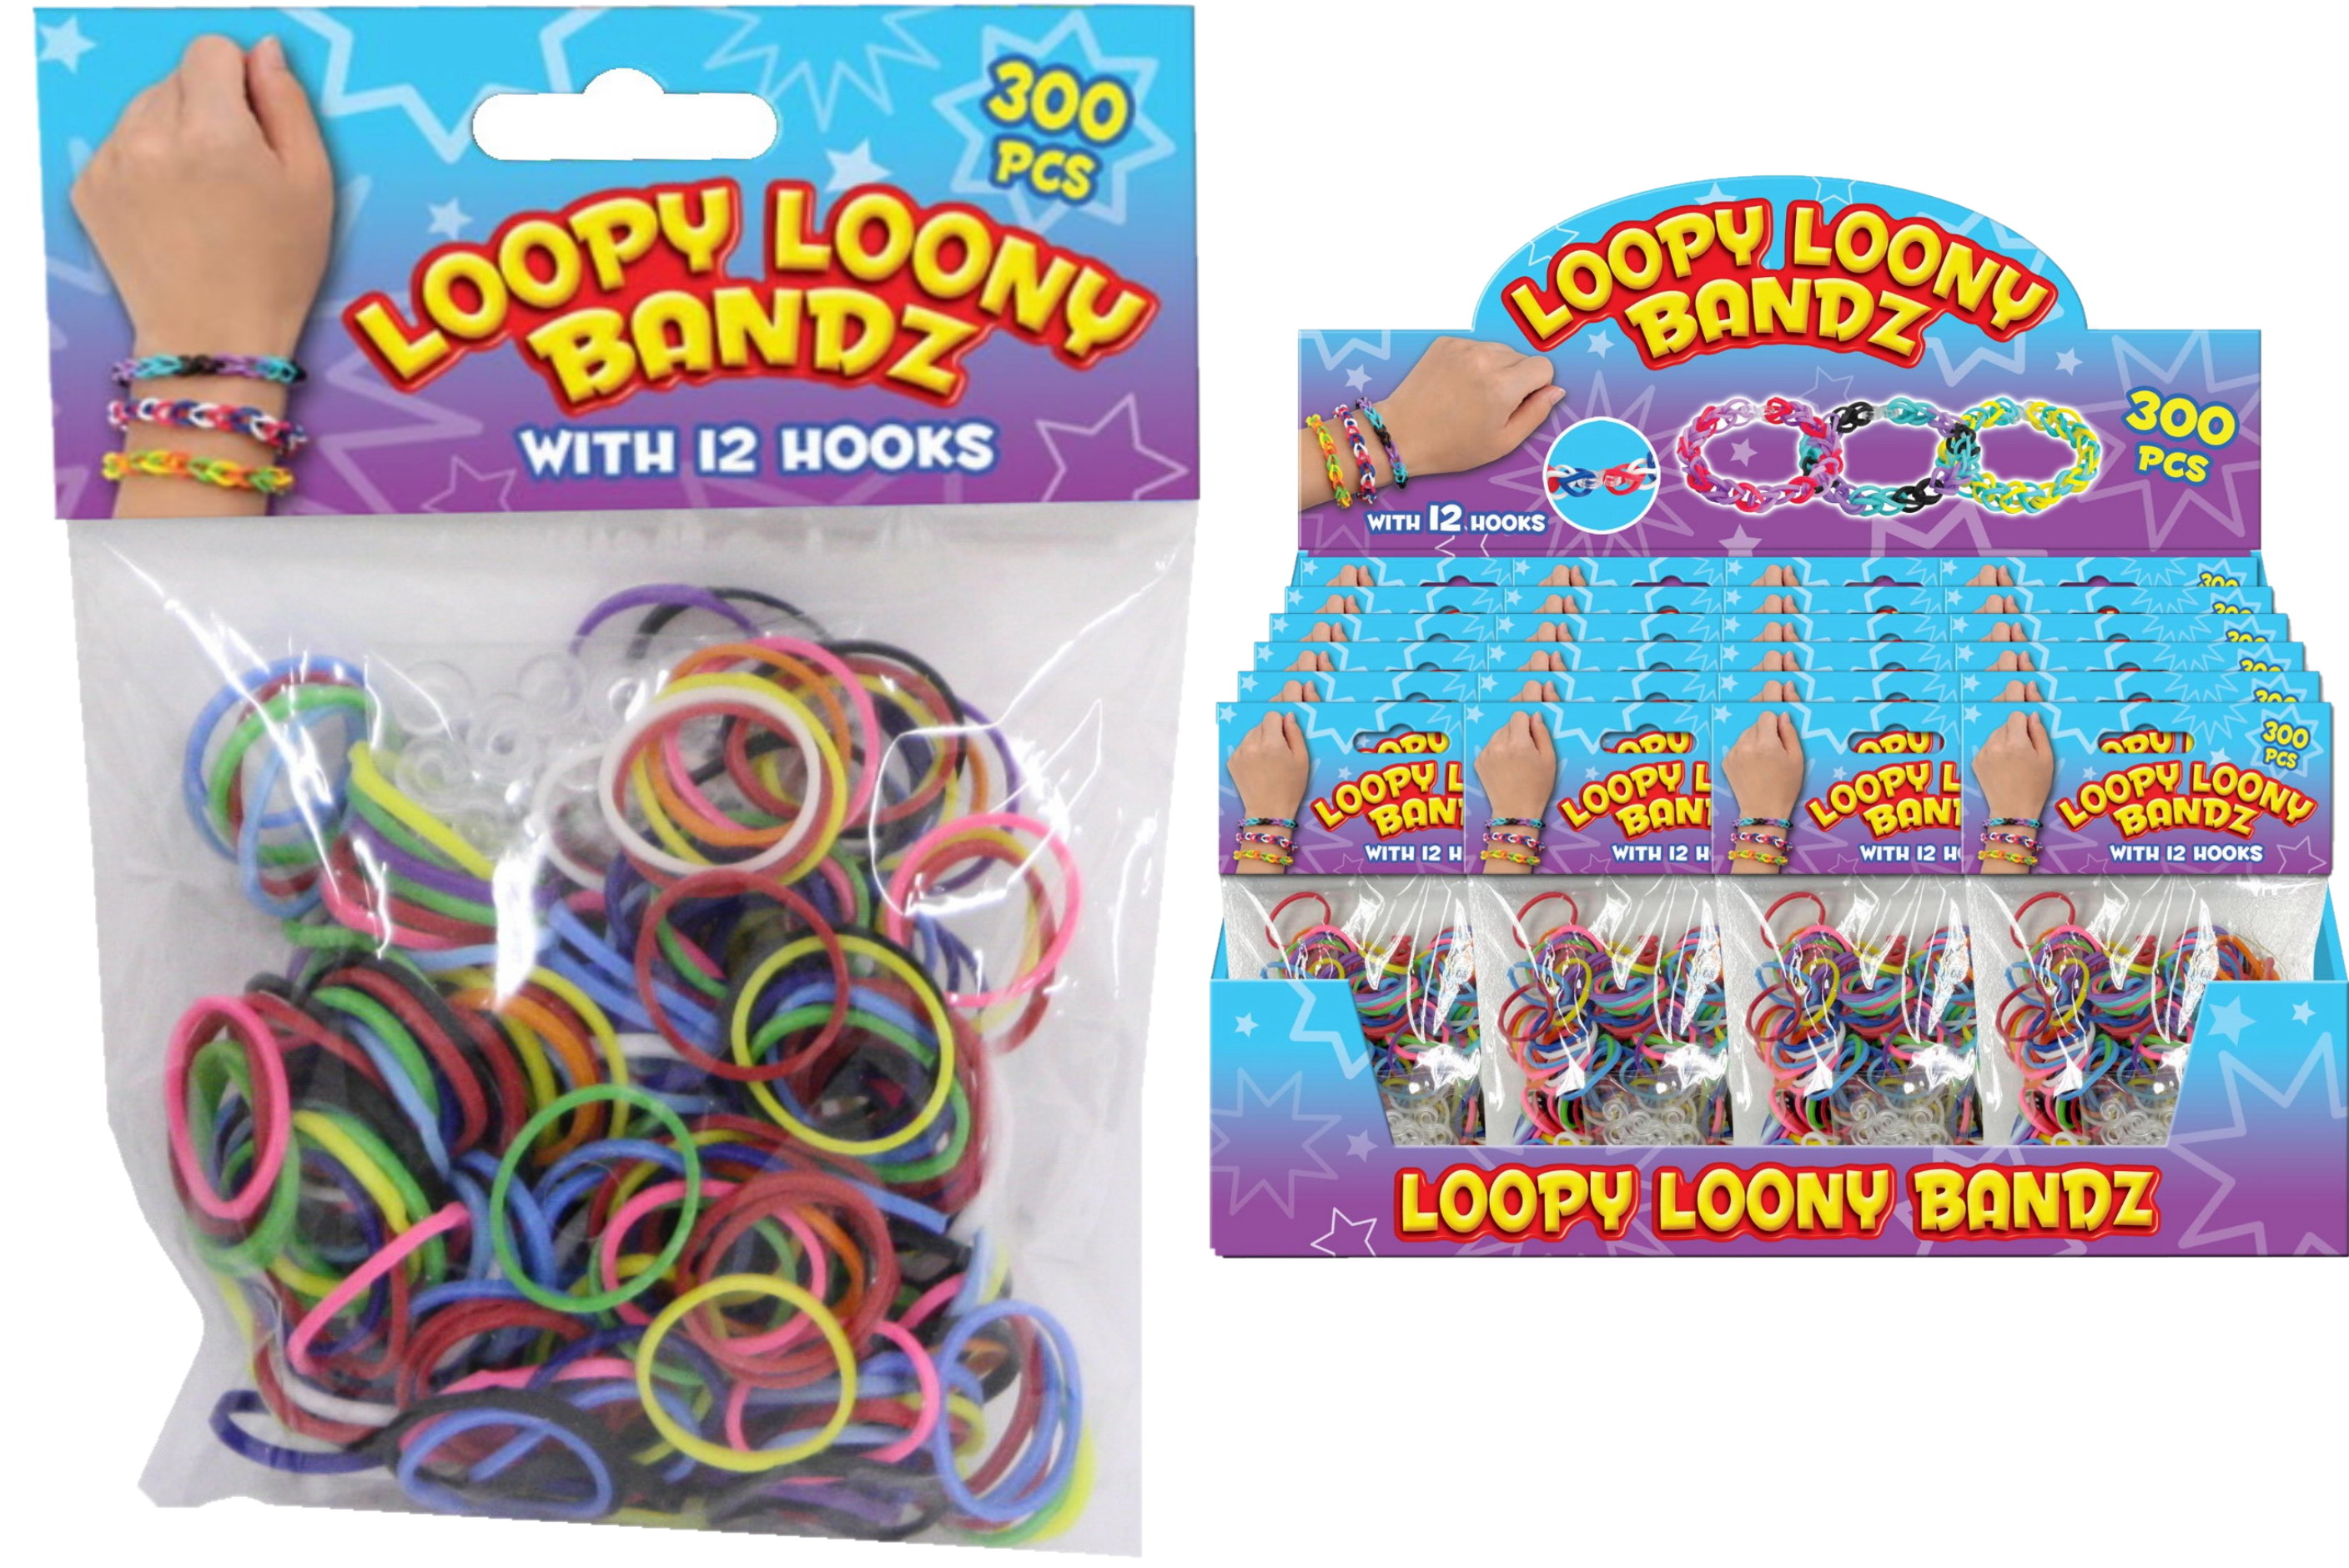 300pc Rubber Loom Bands With 12 Hooks In Display Box